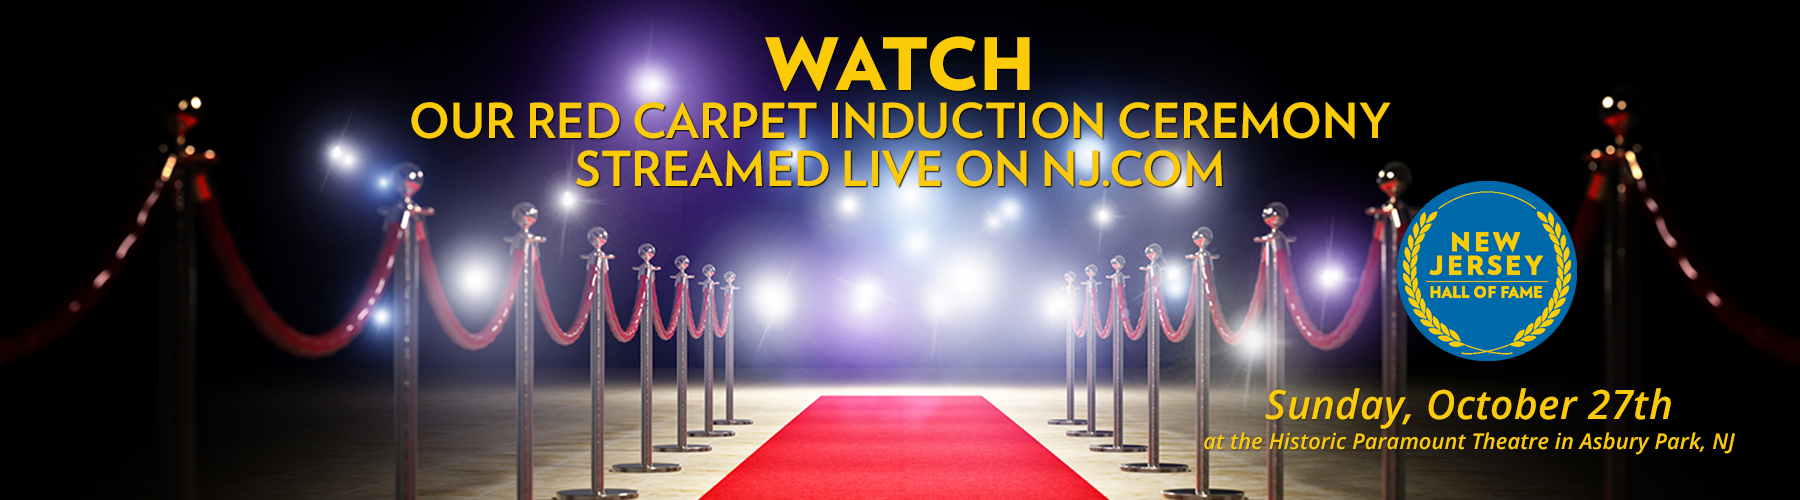 Watch the NJHOF's 11th Annual Induction Ceremony Streamed Live on NJ.com